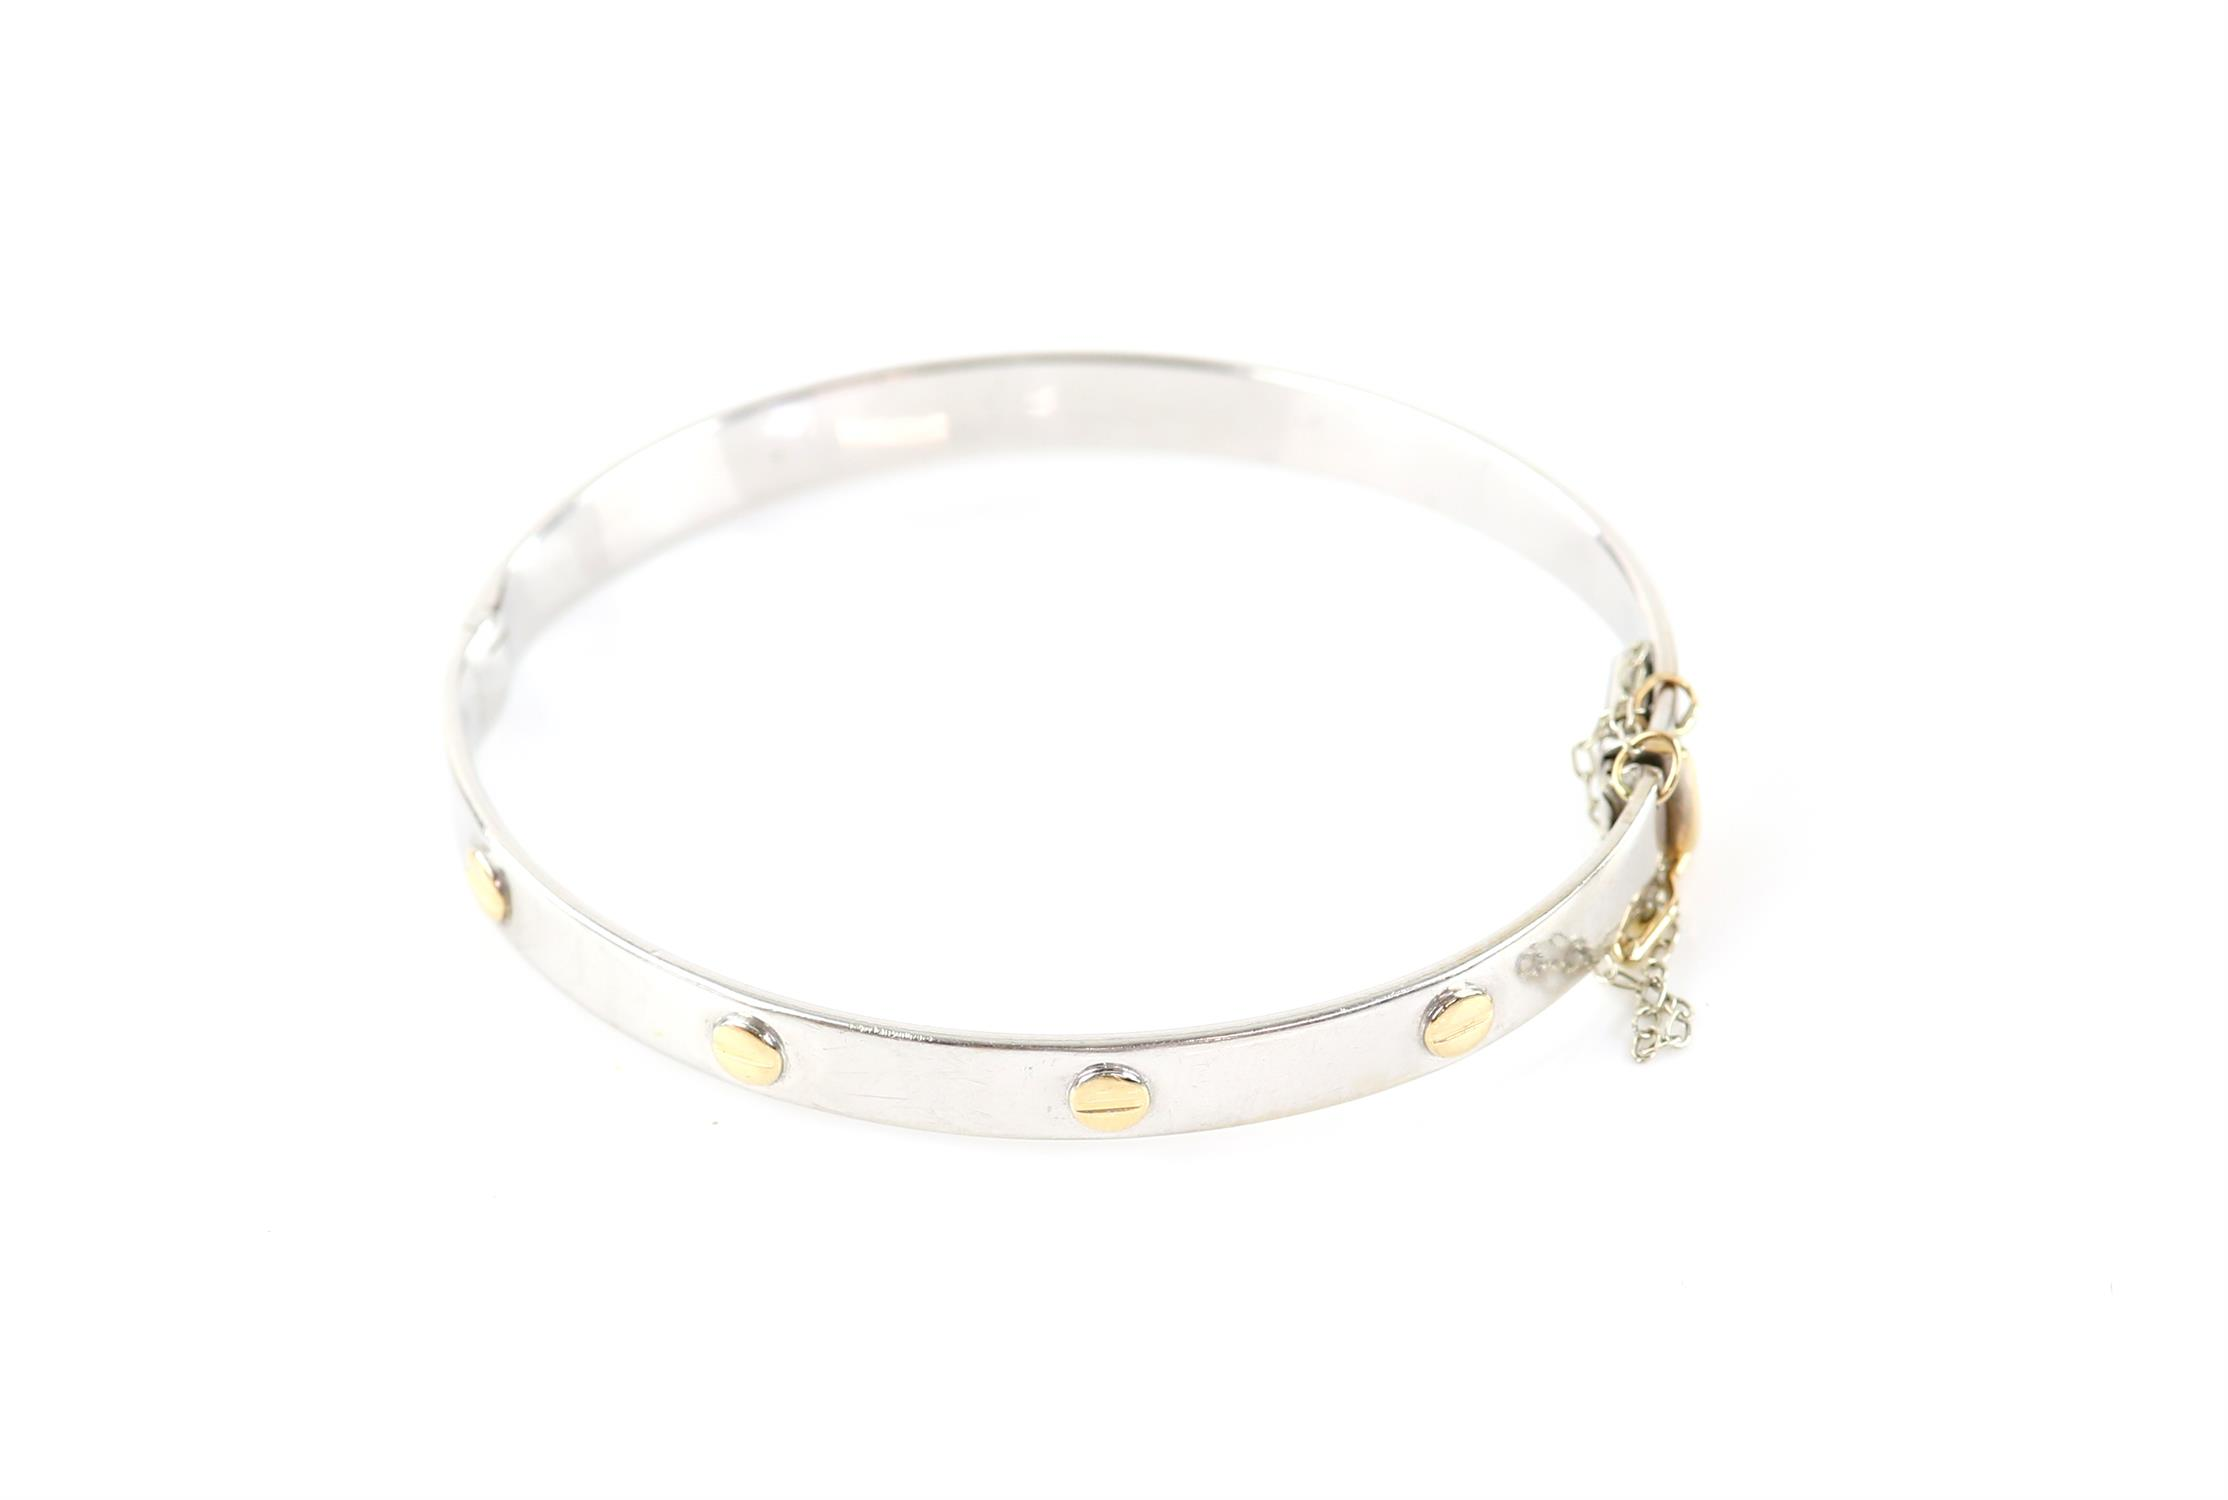 Bi-colour gold hinged bangle, white gold 6.5mm band, with yellow metal screw detail,